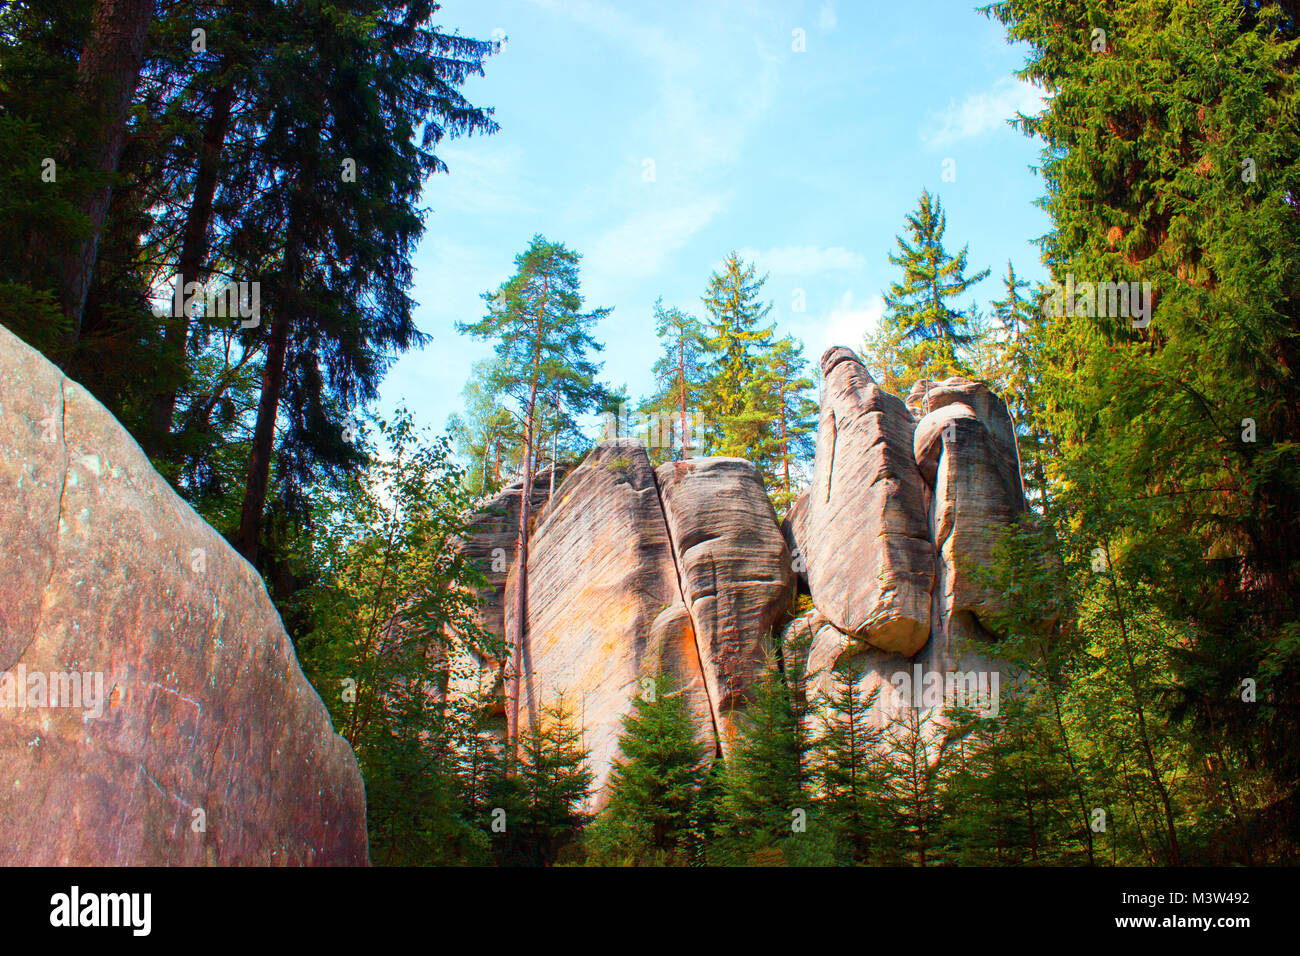 Right rock  is like the sculptures and in the background is the rock with trees. - Stock Image